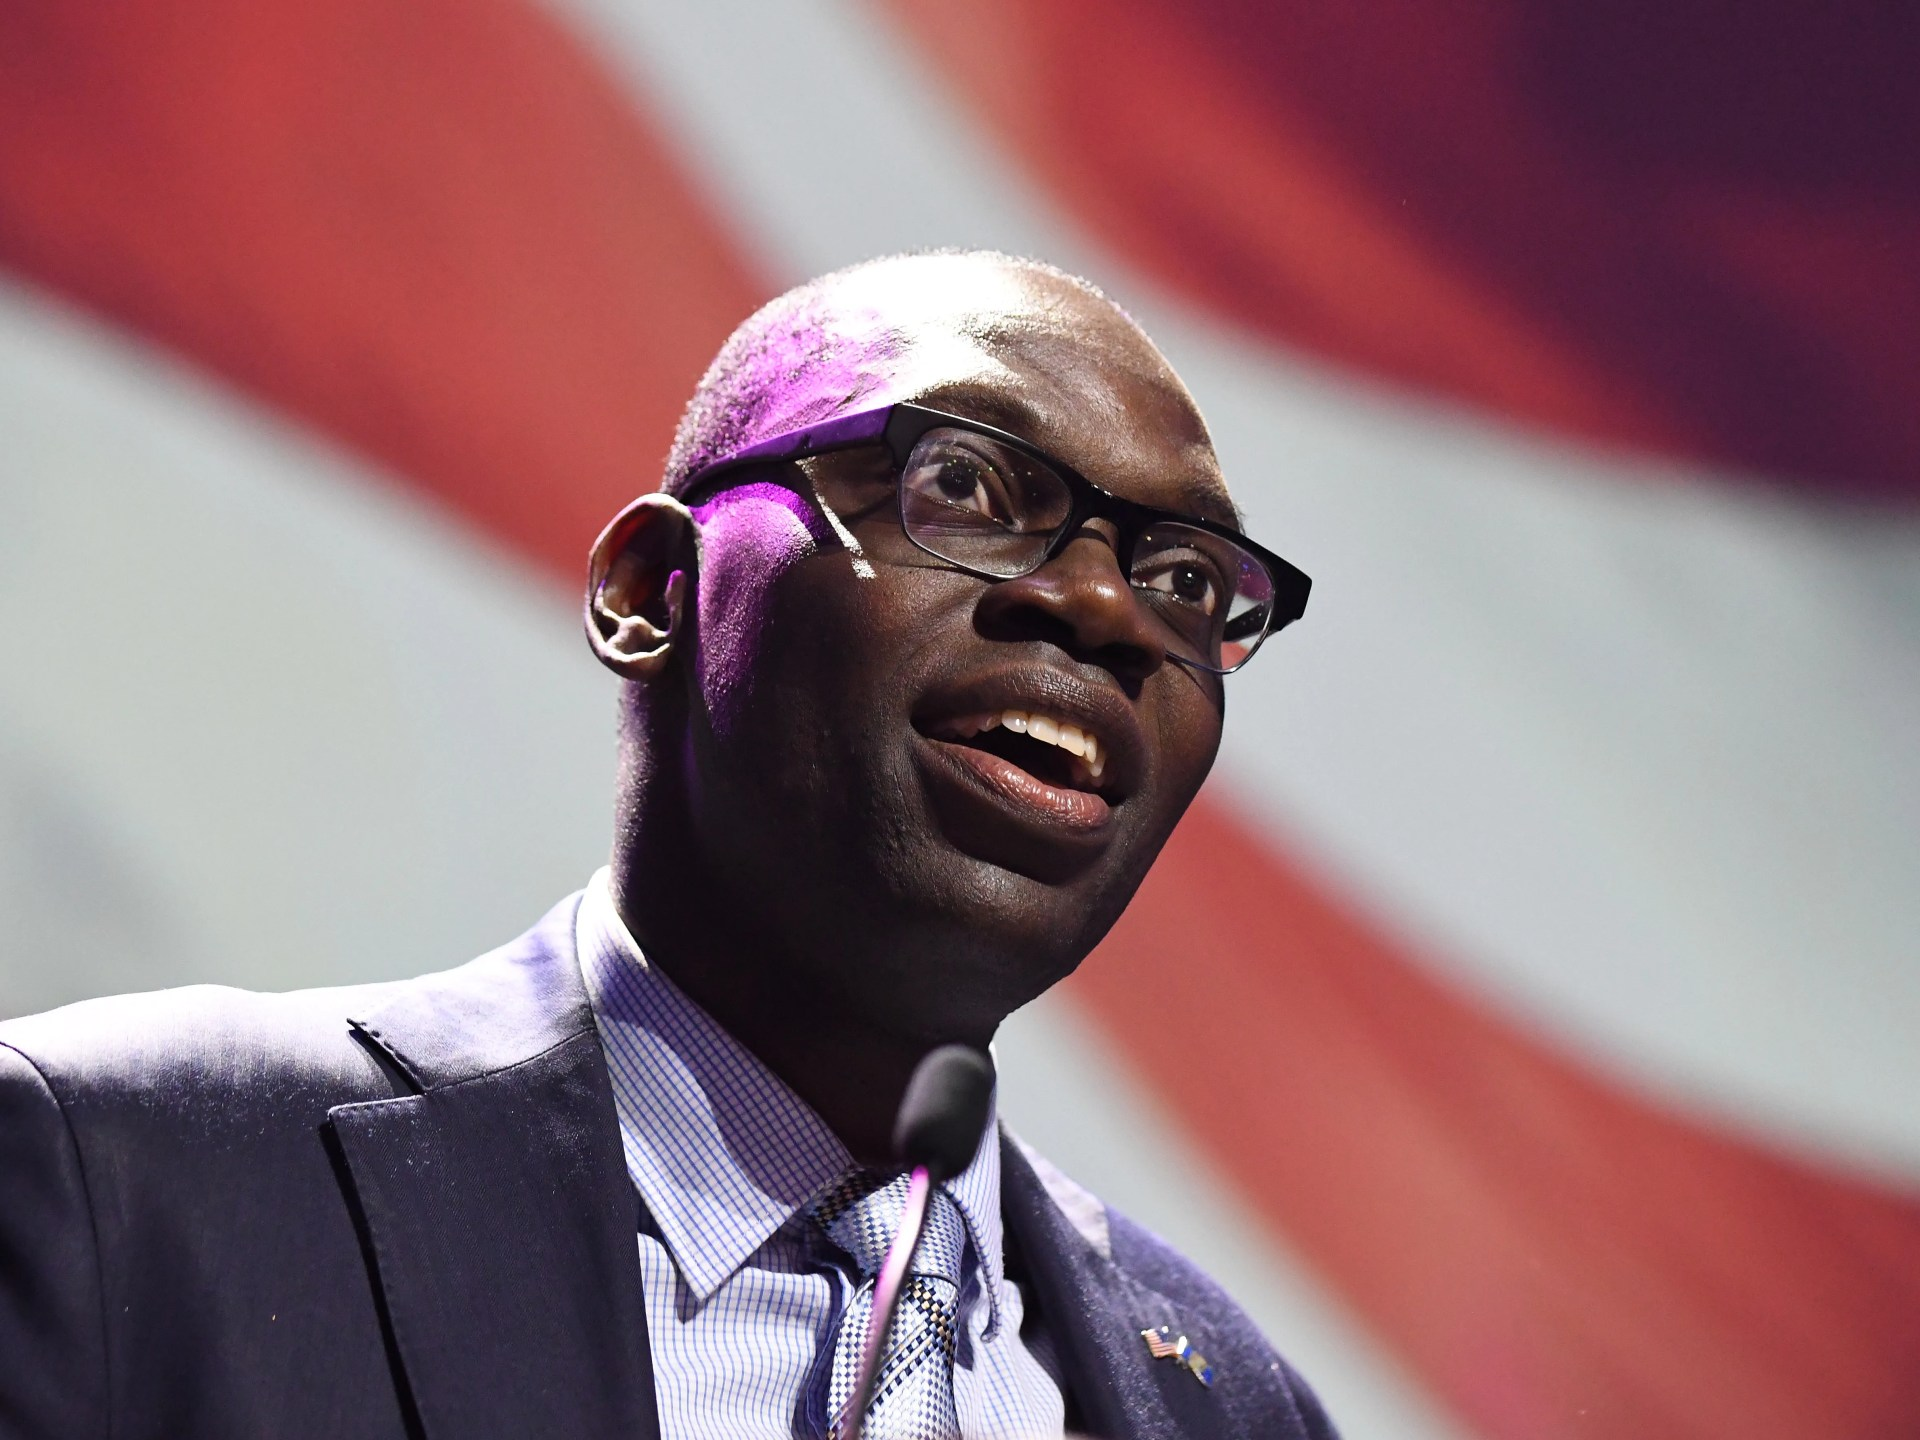 """""""I am so excited about what the state of Michigan is doing right now,"""" said Garlin Gilchrist II said after the race was called. """"I am so proud to humbly accept the opportunity to serve as your next lieutenant governor."""""""